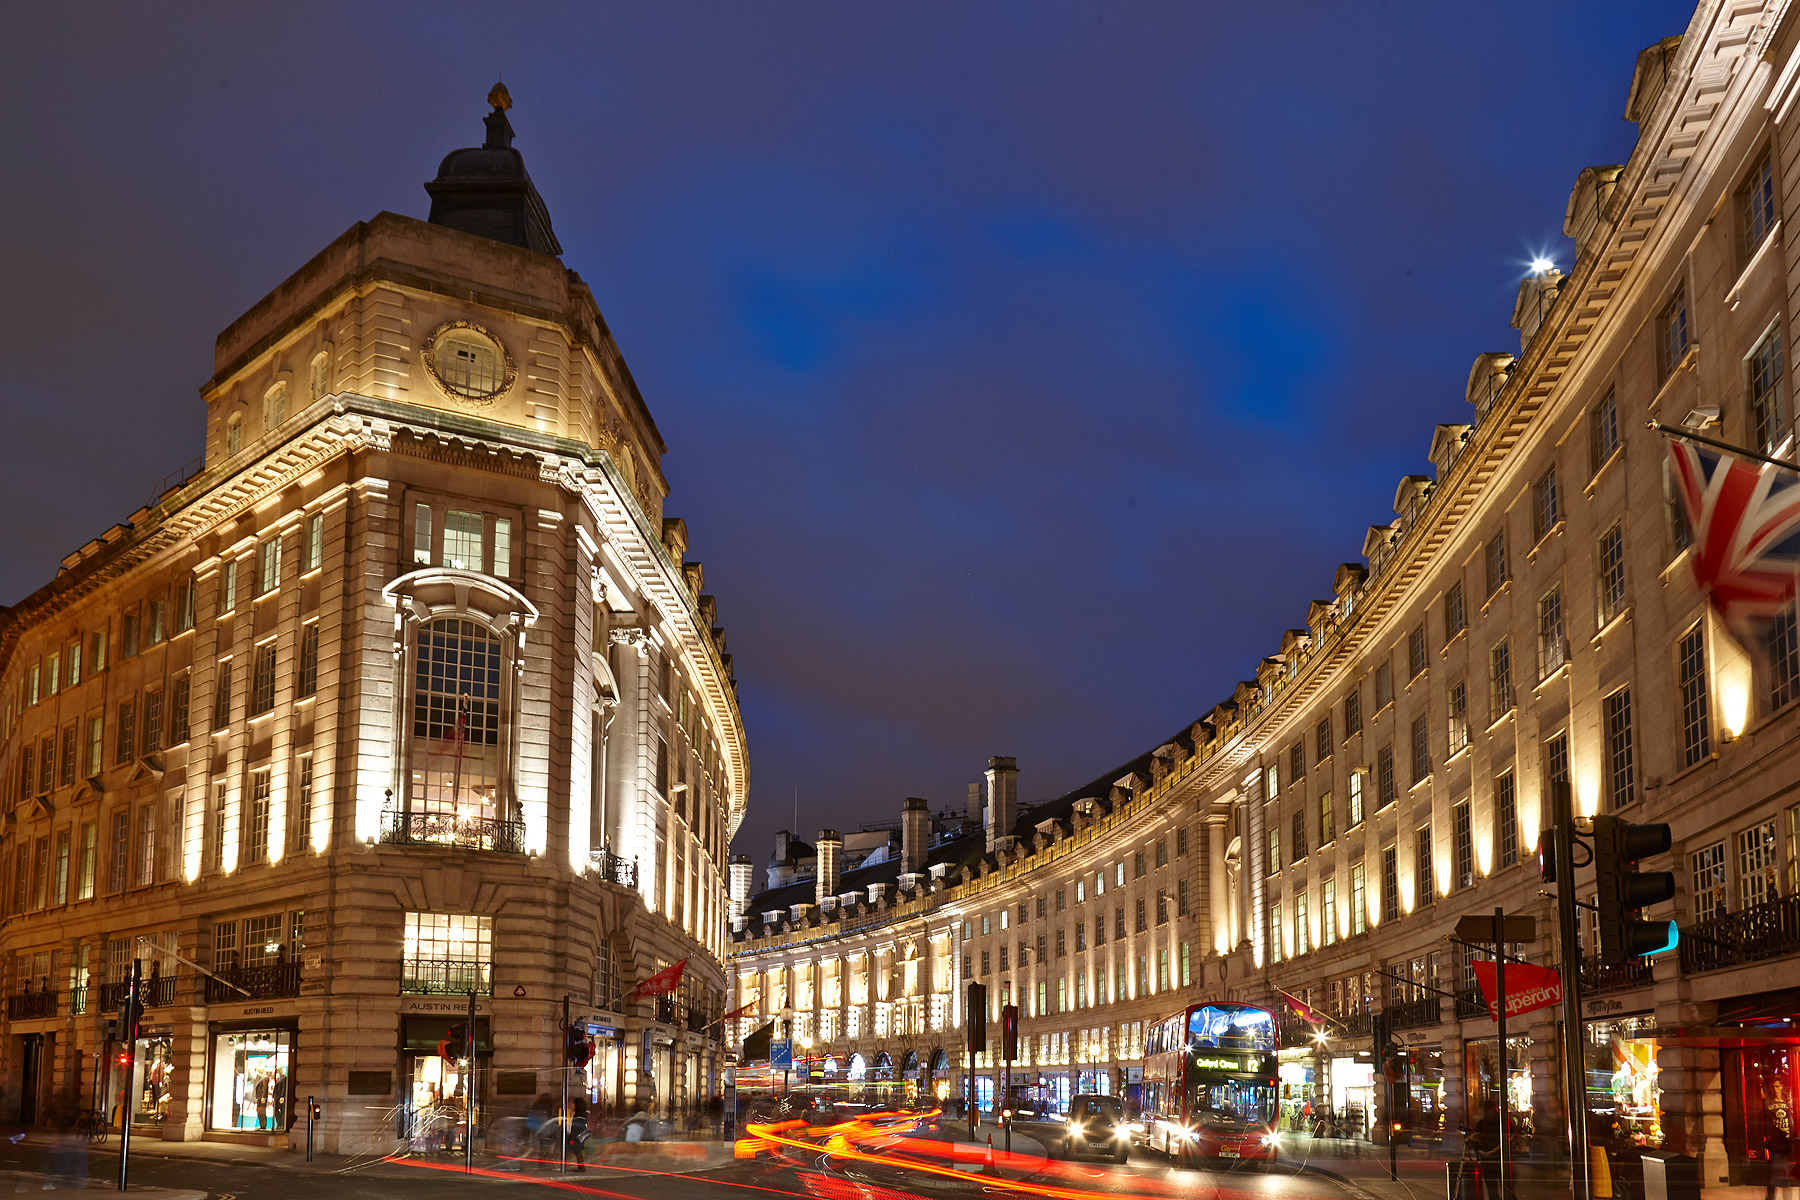 Ten Great Places To Eat In And Around London's Renowned Regent Street